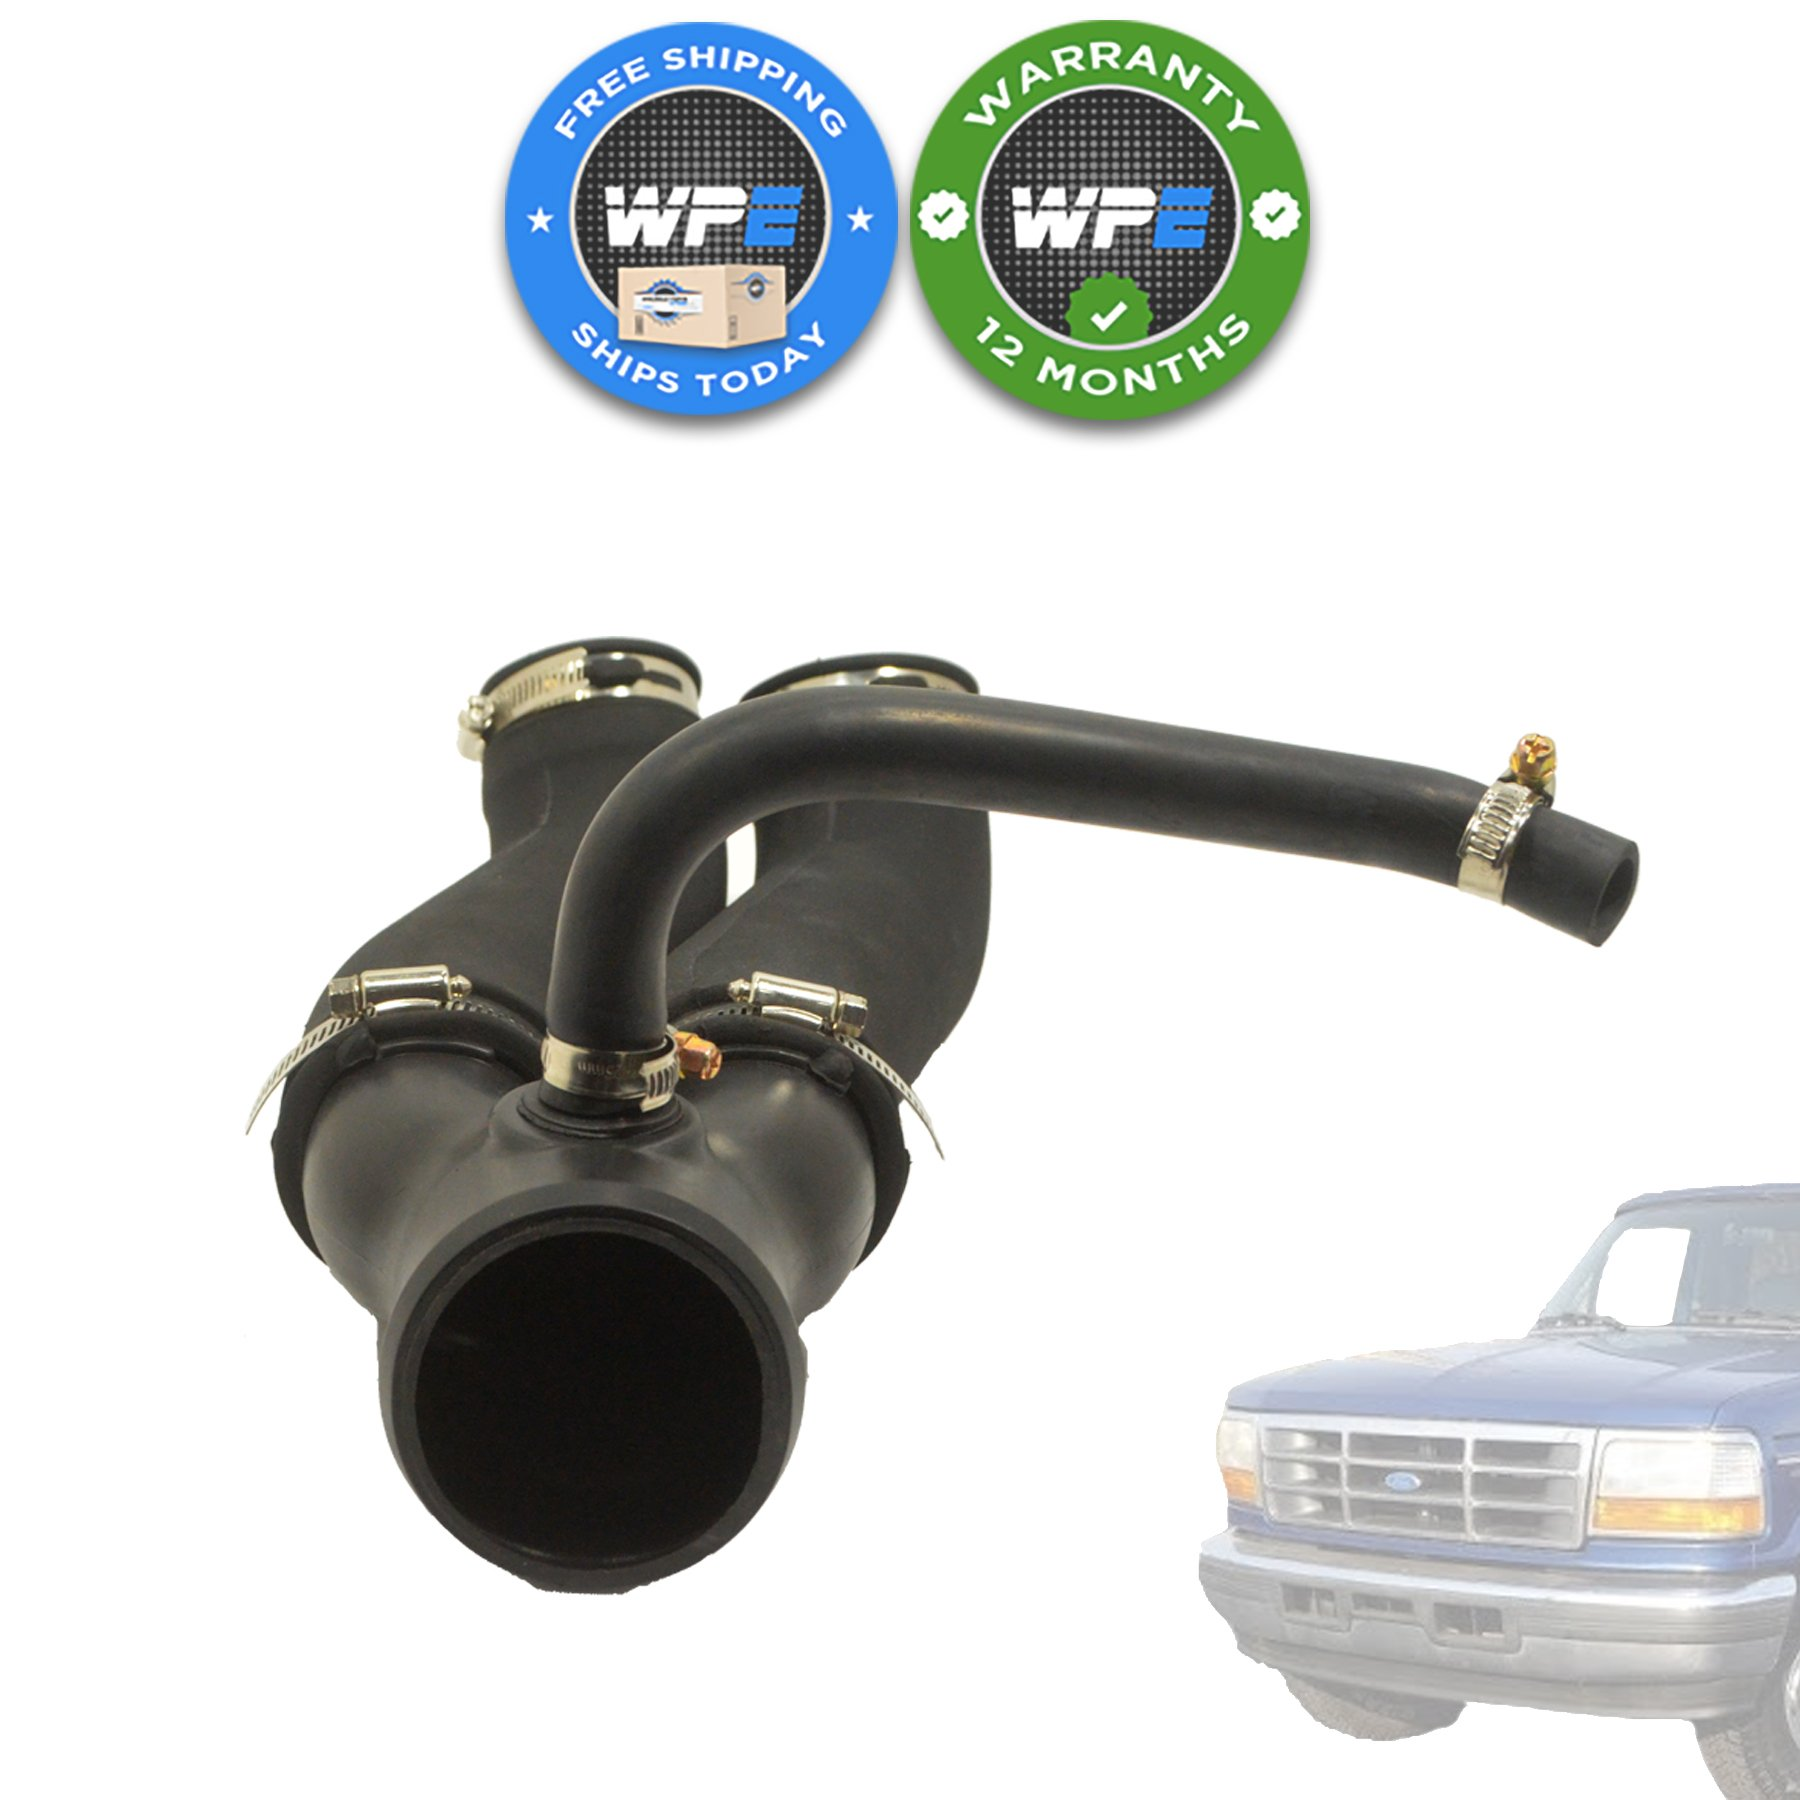 1994 1997 ford bronco intake hose air tube boot f6tz 9b659 ad f6tz9b659ad wholesale parts. Black Bedroom Furniture Sets. Home Design Ideas